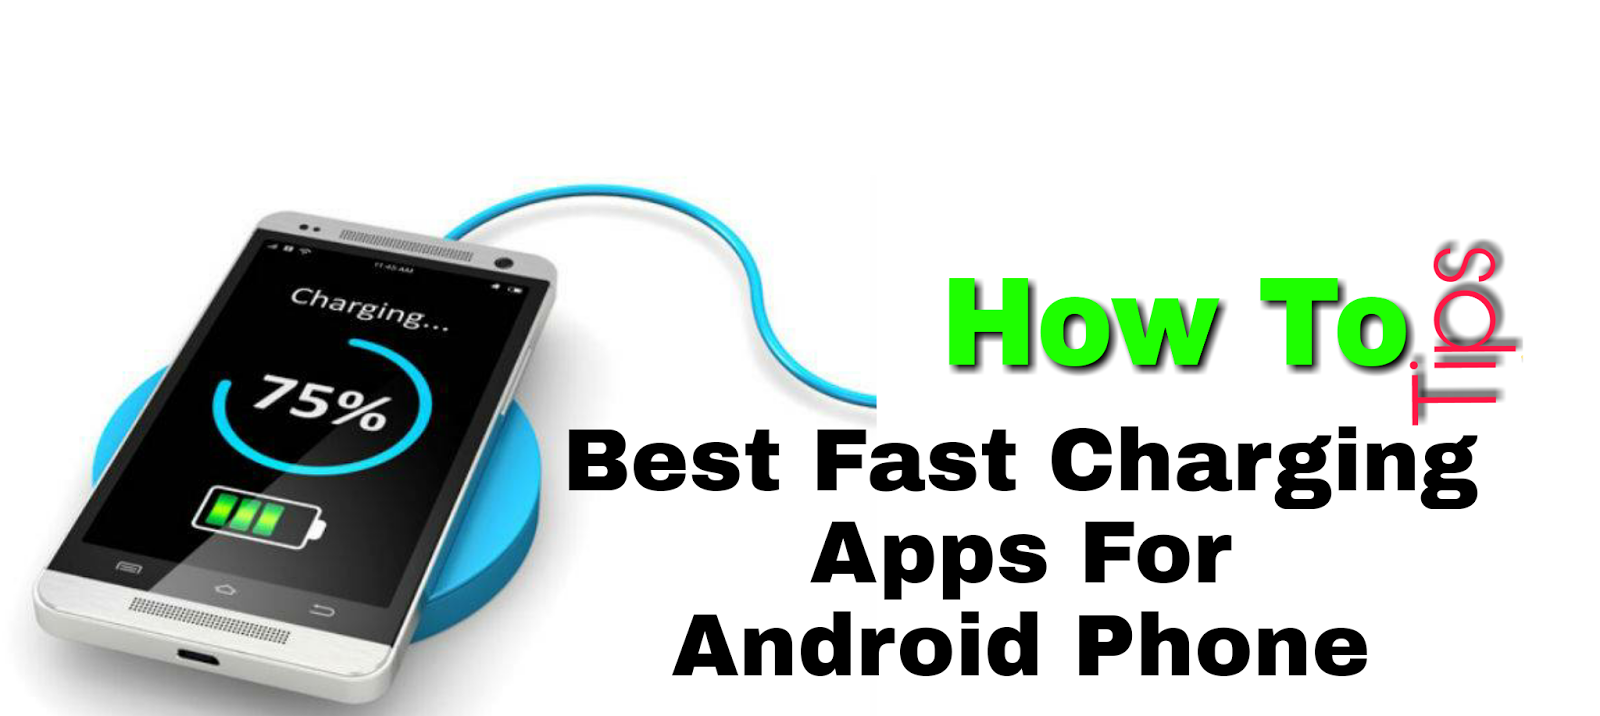 Best Fast Charging Apps For Android Phone - How To Tips